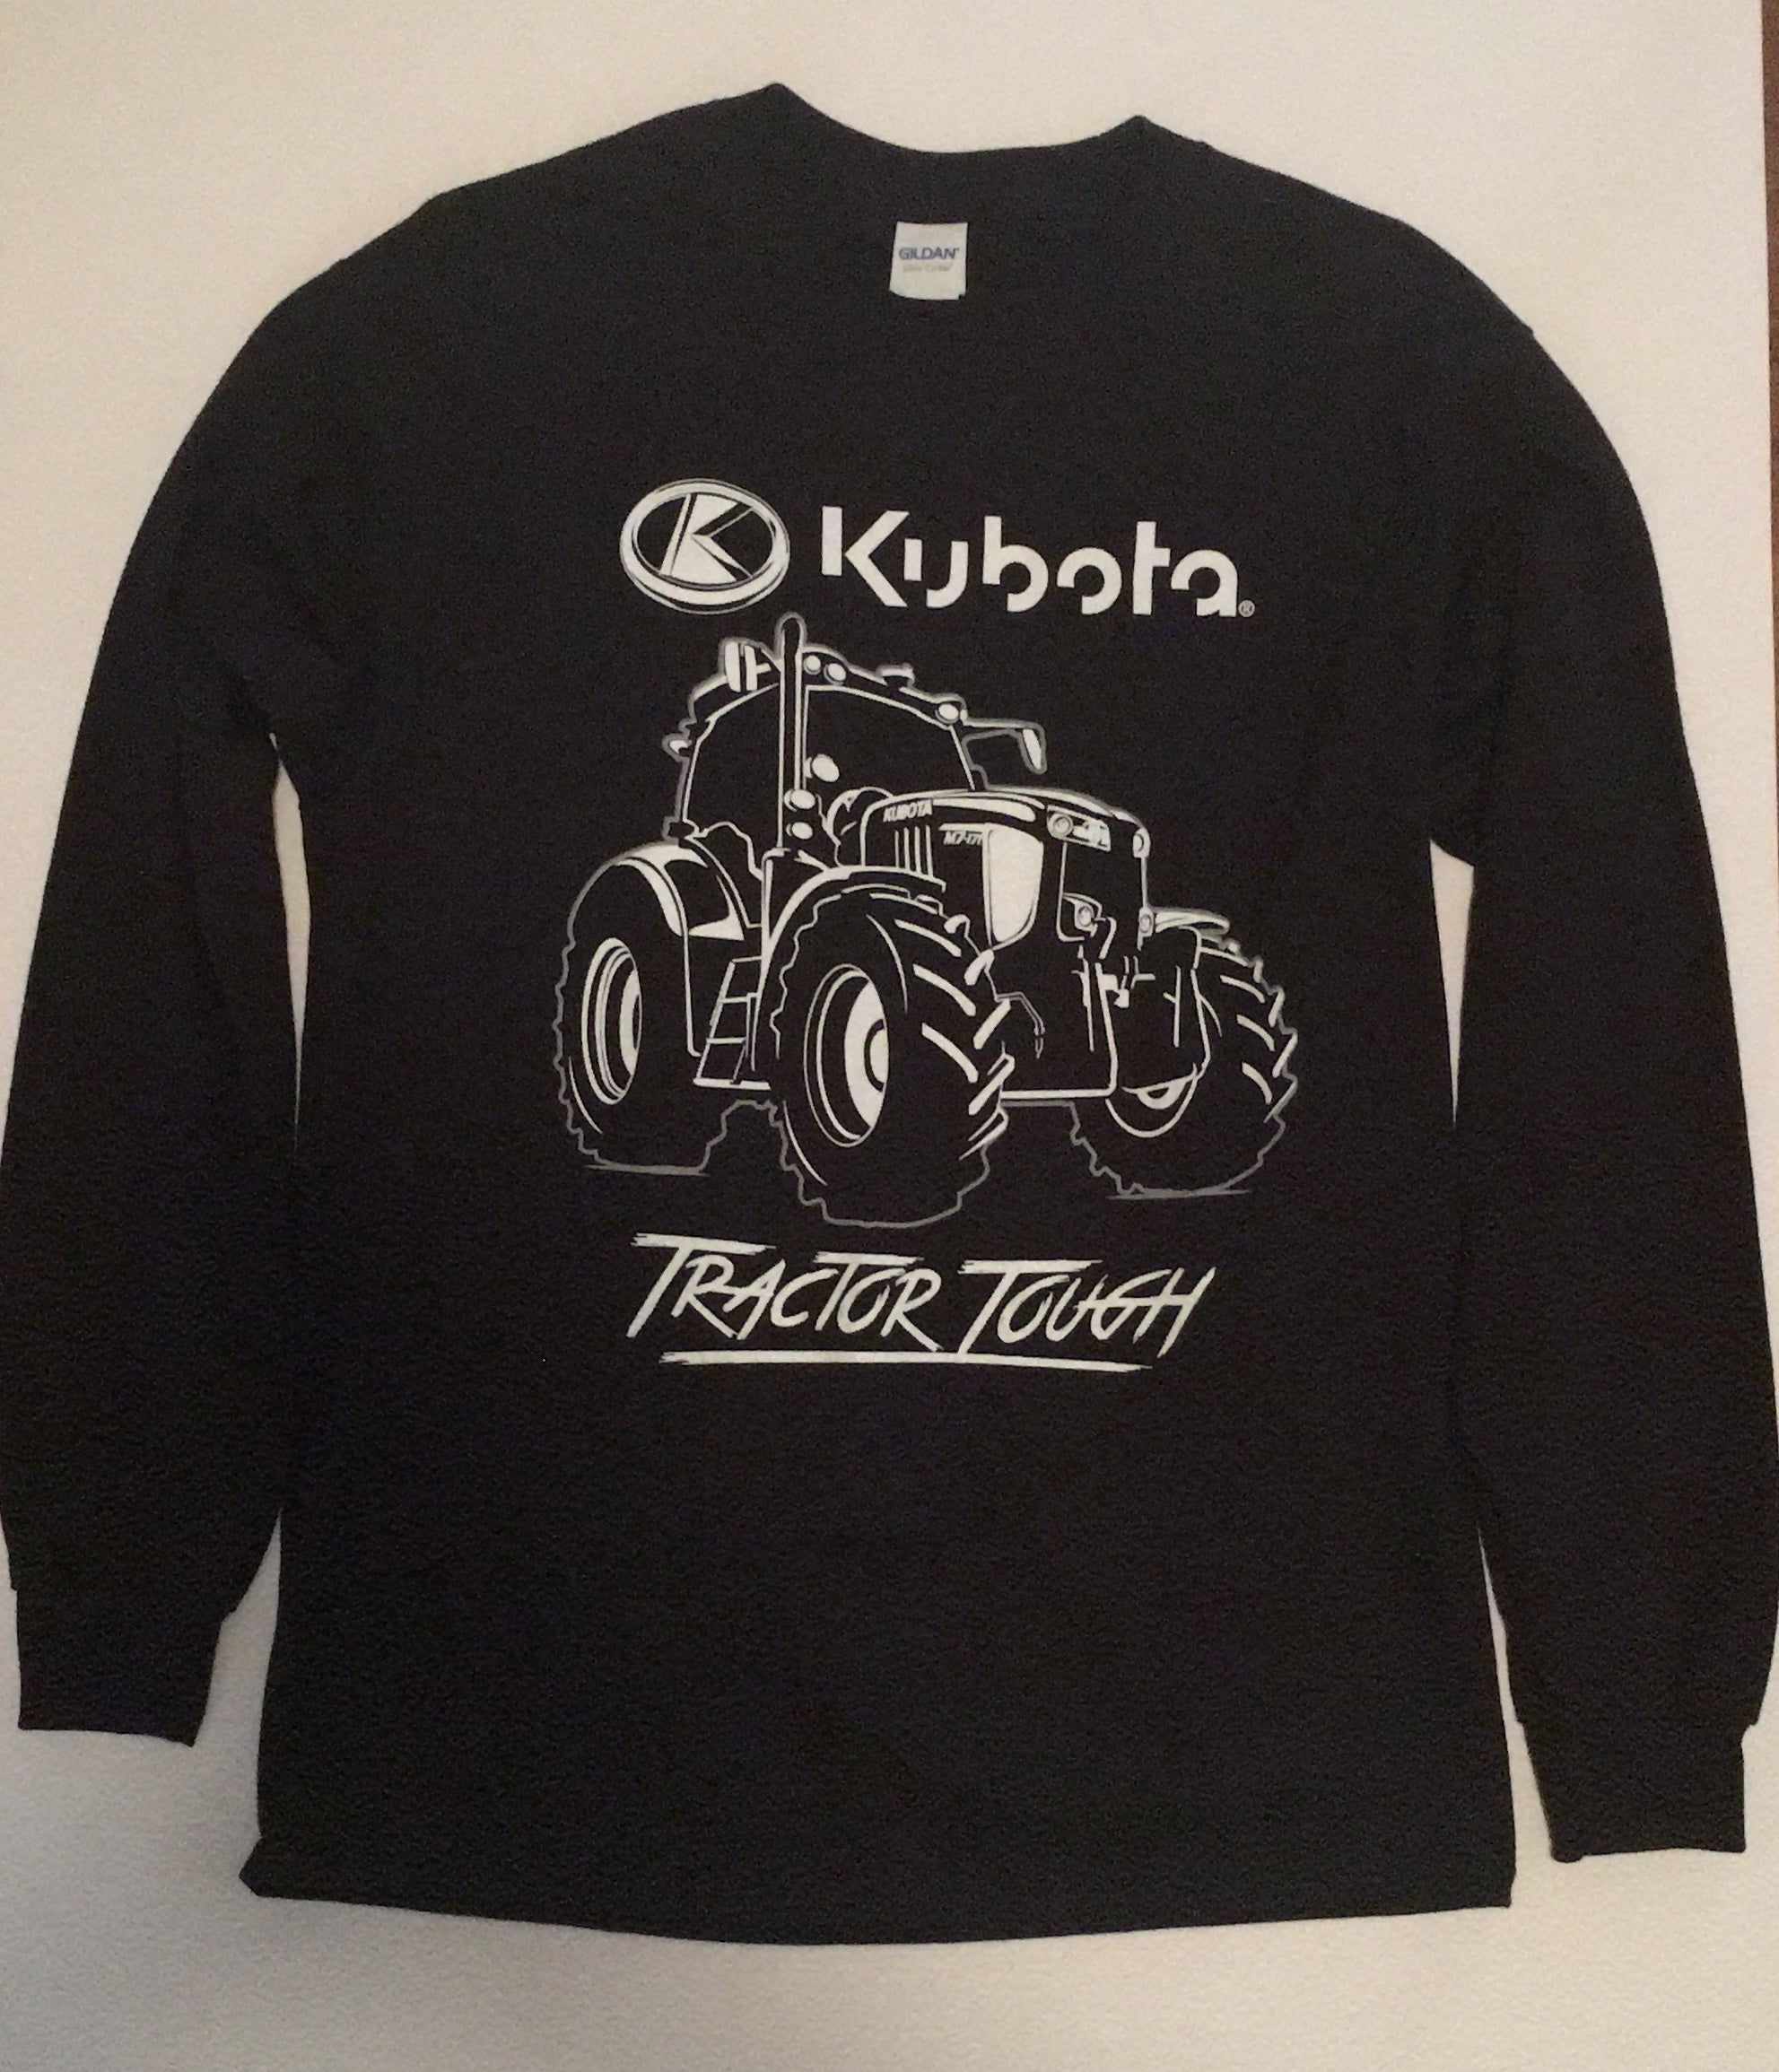 Tractor Tough L/S Shirt